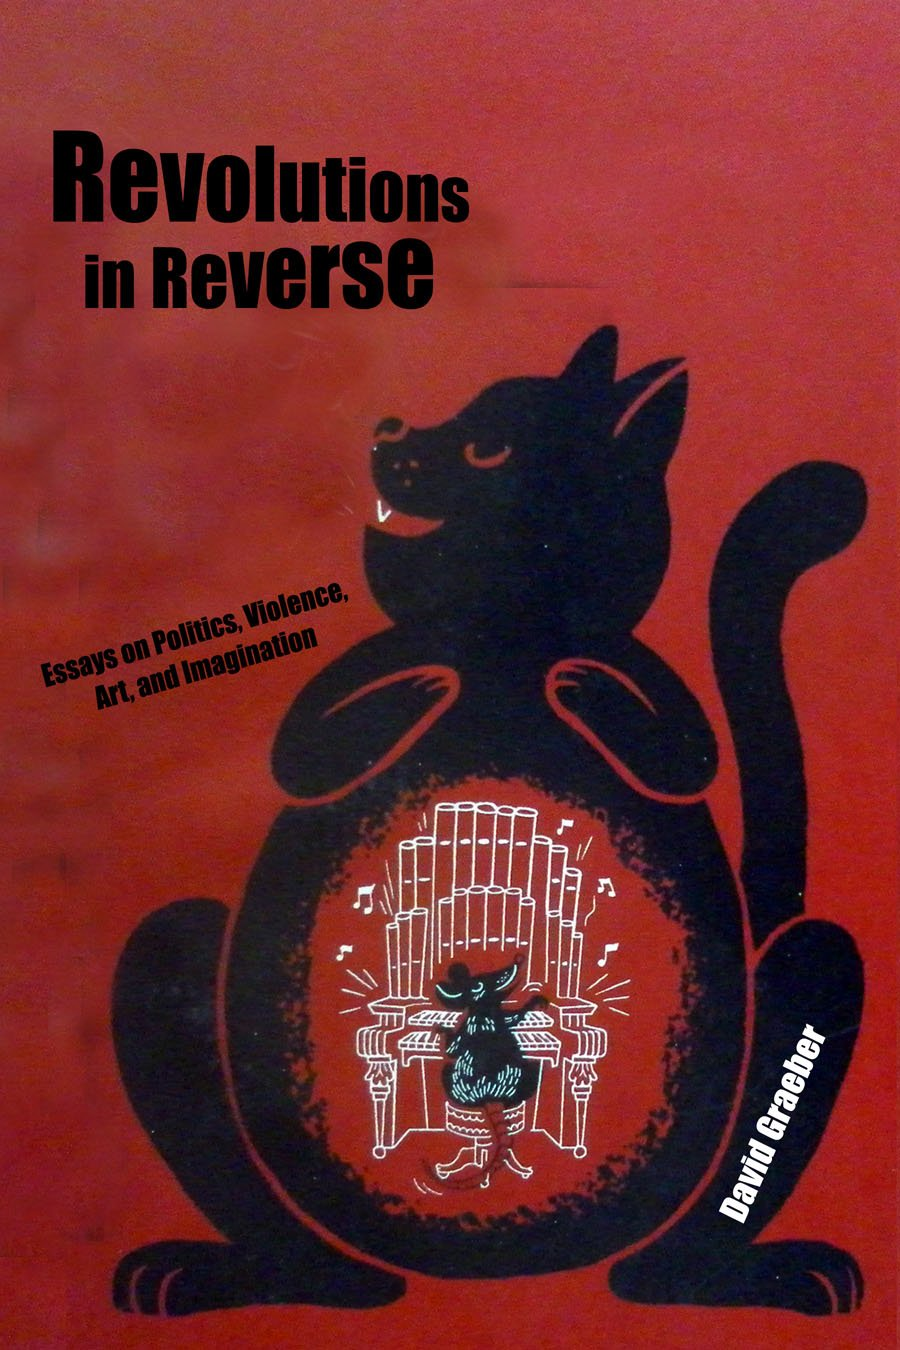 revolutions in reverse - book cover.jpg